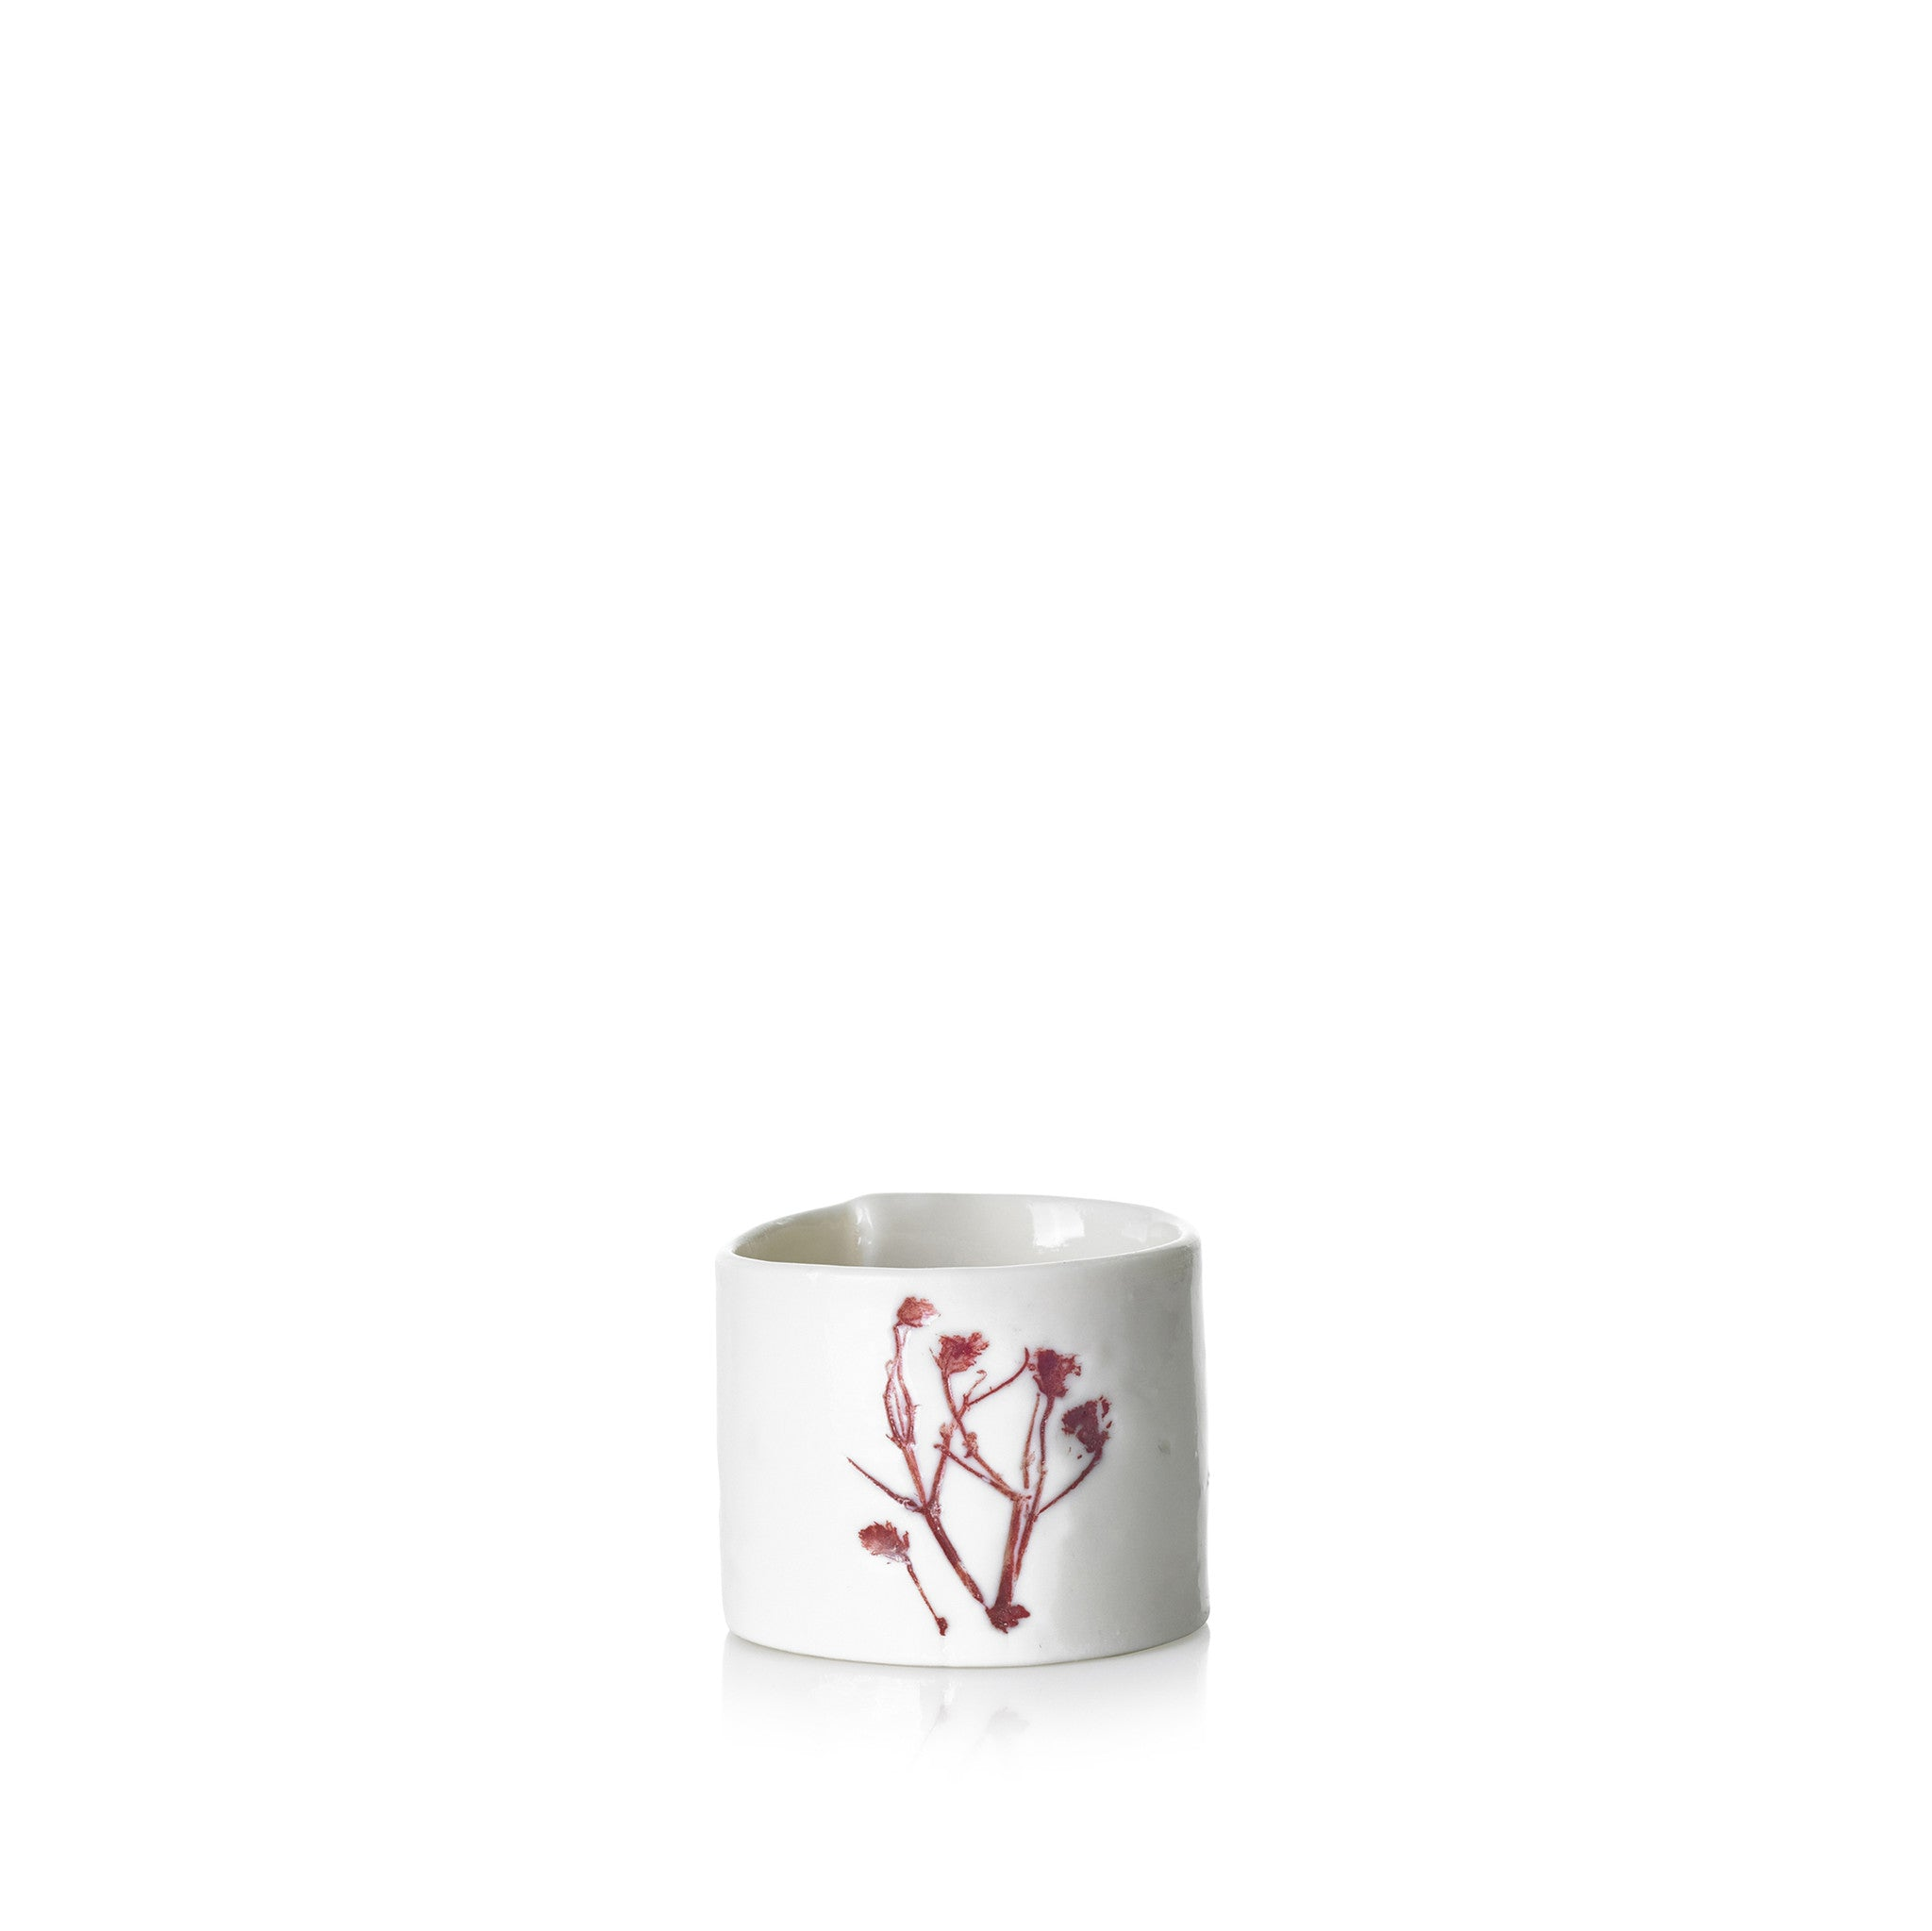 Embossed Porcelain Napkin Ring in Red